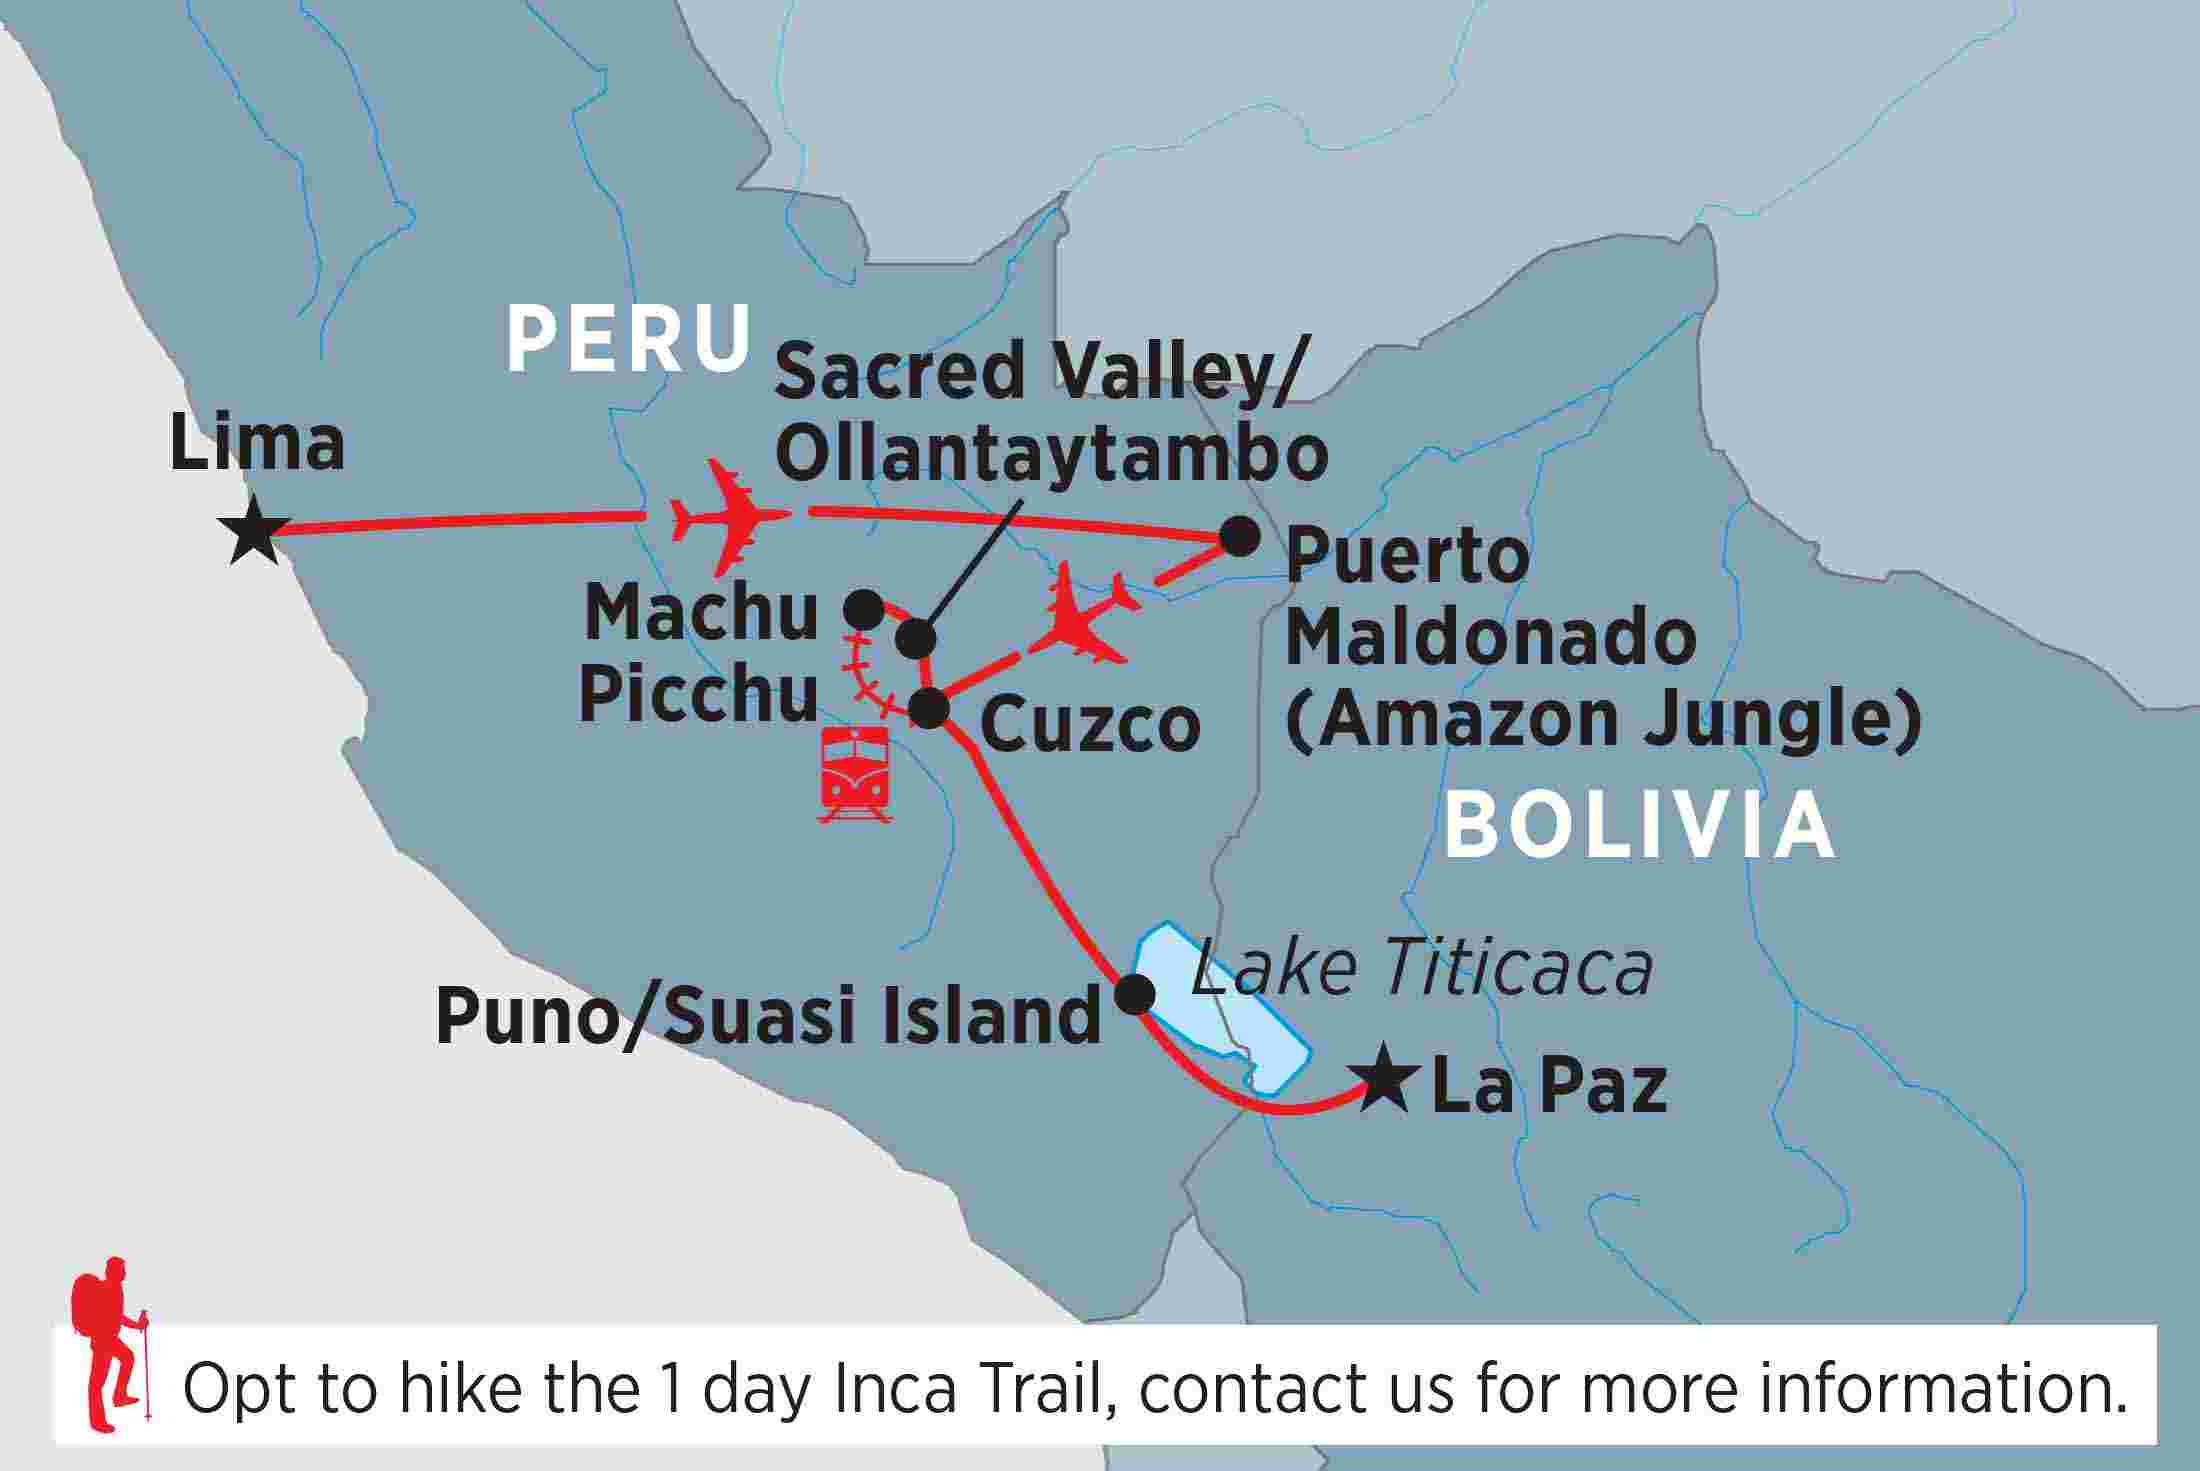 Peru Tours, Travel & Trips | Peregrine Adventures GB on zapotec map, ming dynasty, mesopotamia map, peru map, nazca lines, tenochtitlan map, mexico city map, cheyenne map, columbian exchange, olmec map, mughal empire map, teotihuacan map, mississippian map, tikal map, mongol empire, latin america map, indigenous peoples of the americas, byzantine empire map, machu picchu, francisco pizarro, mesoamerica map, inca society, chichen itza map, andean civilizations, mayan map, aztec map, iraca map, andes mountains map, byzantine empire, inuit map,